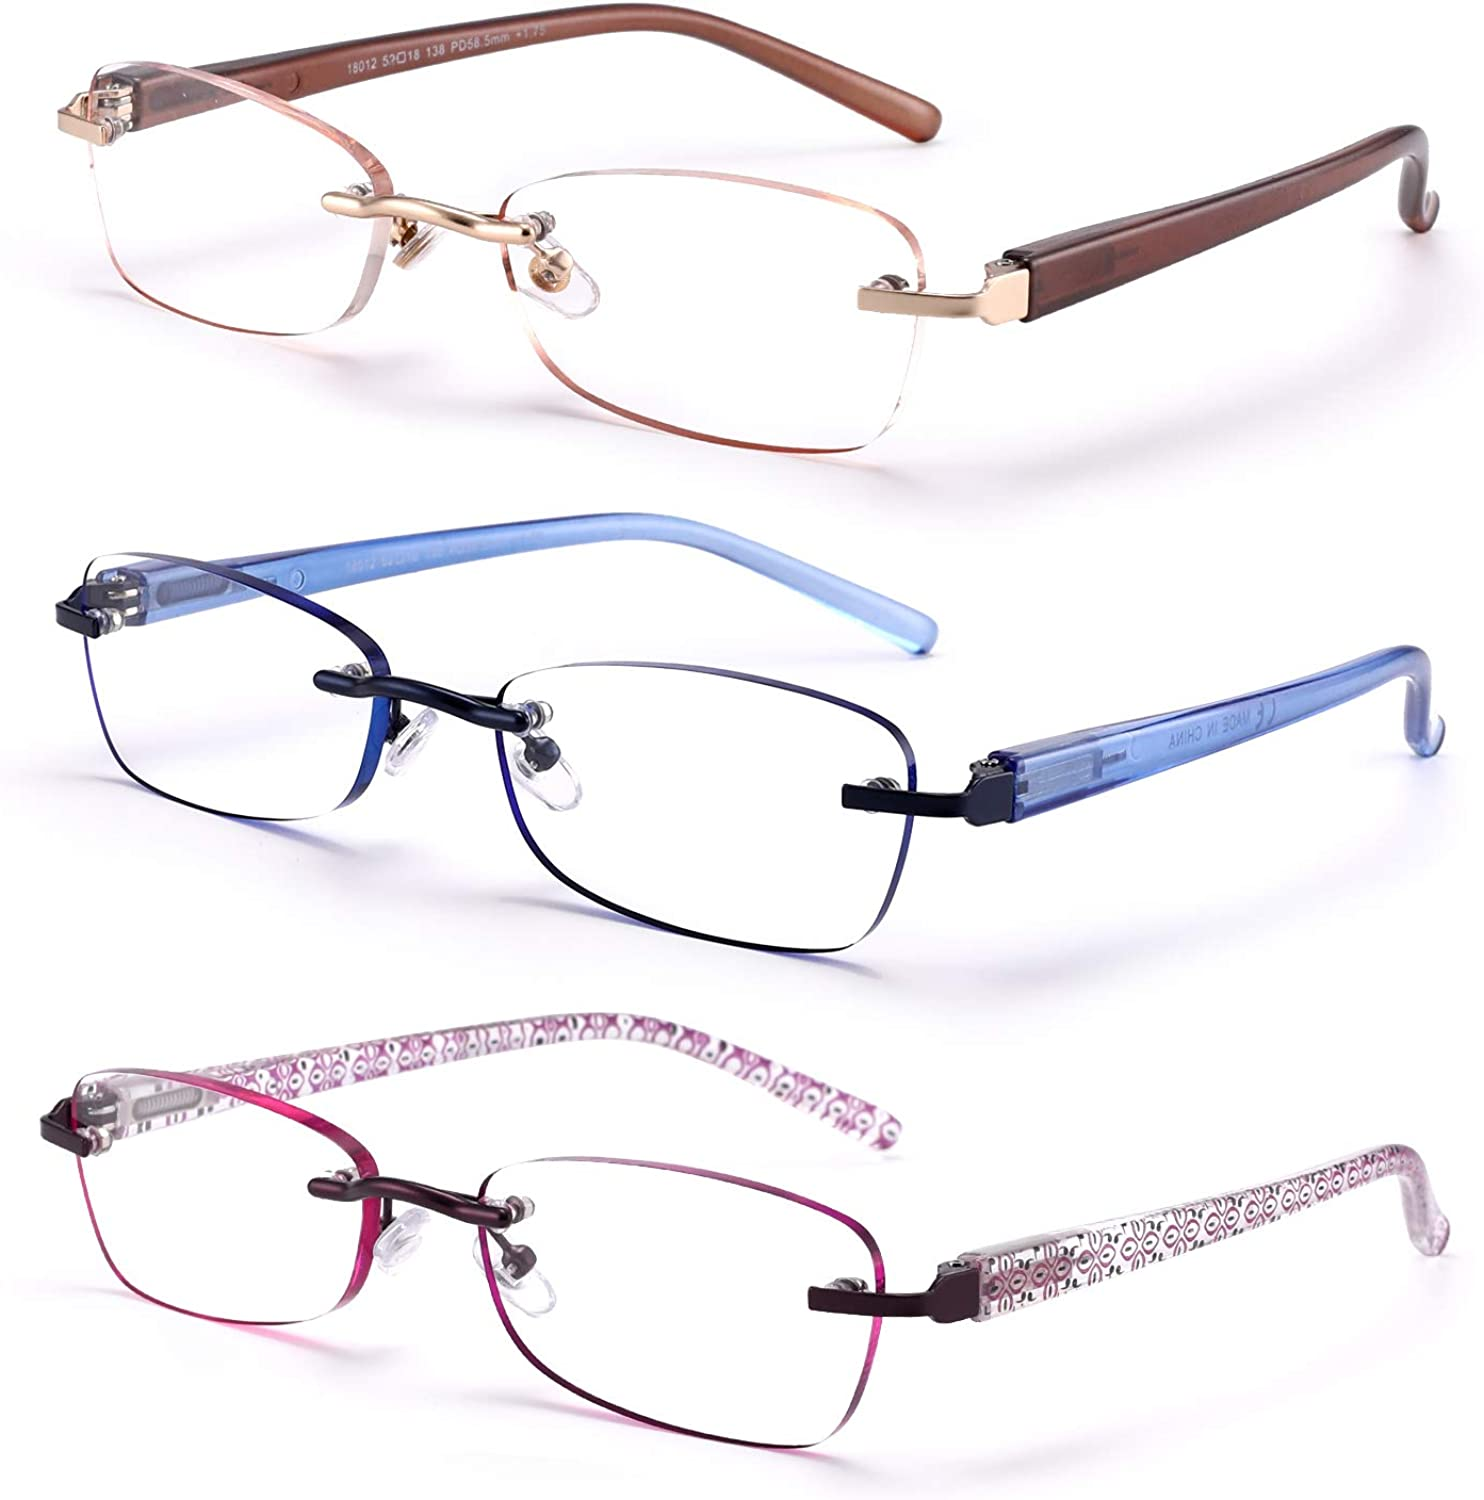 FEIVSN Max 66% OFF Super popular specialty store 3-Pack Rimless Reading Glasses Women Lightweight Spr For